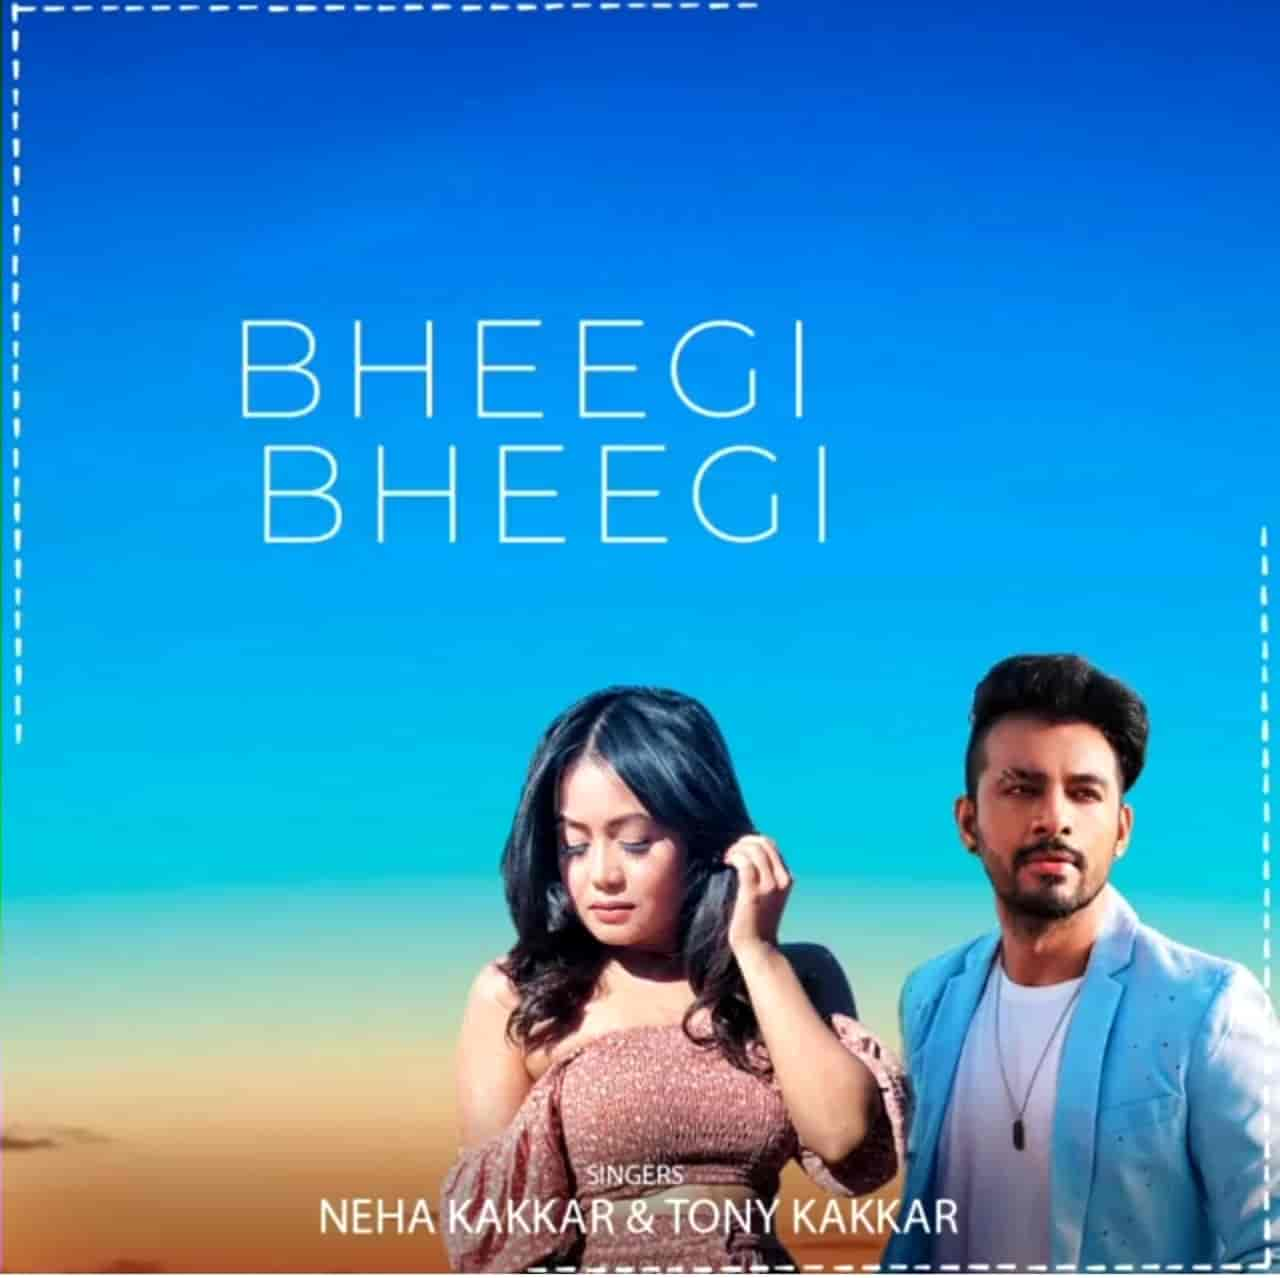 Bheegi Bheegi Song Lyrical Image Features Neha Kakkar, Tony Kakkar